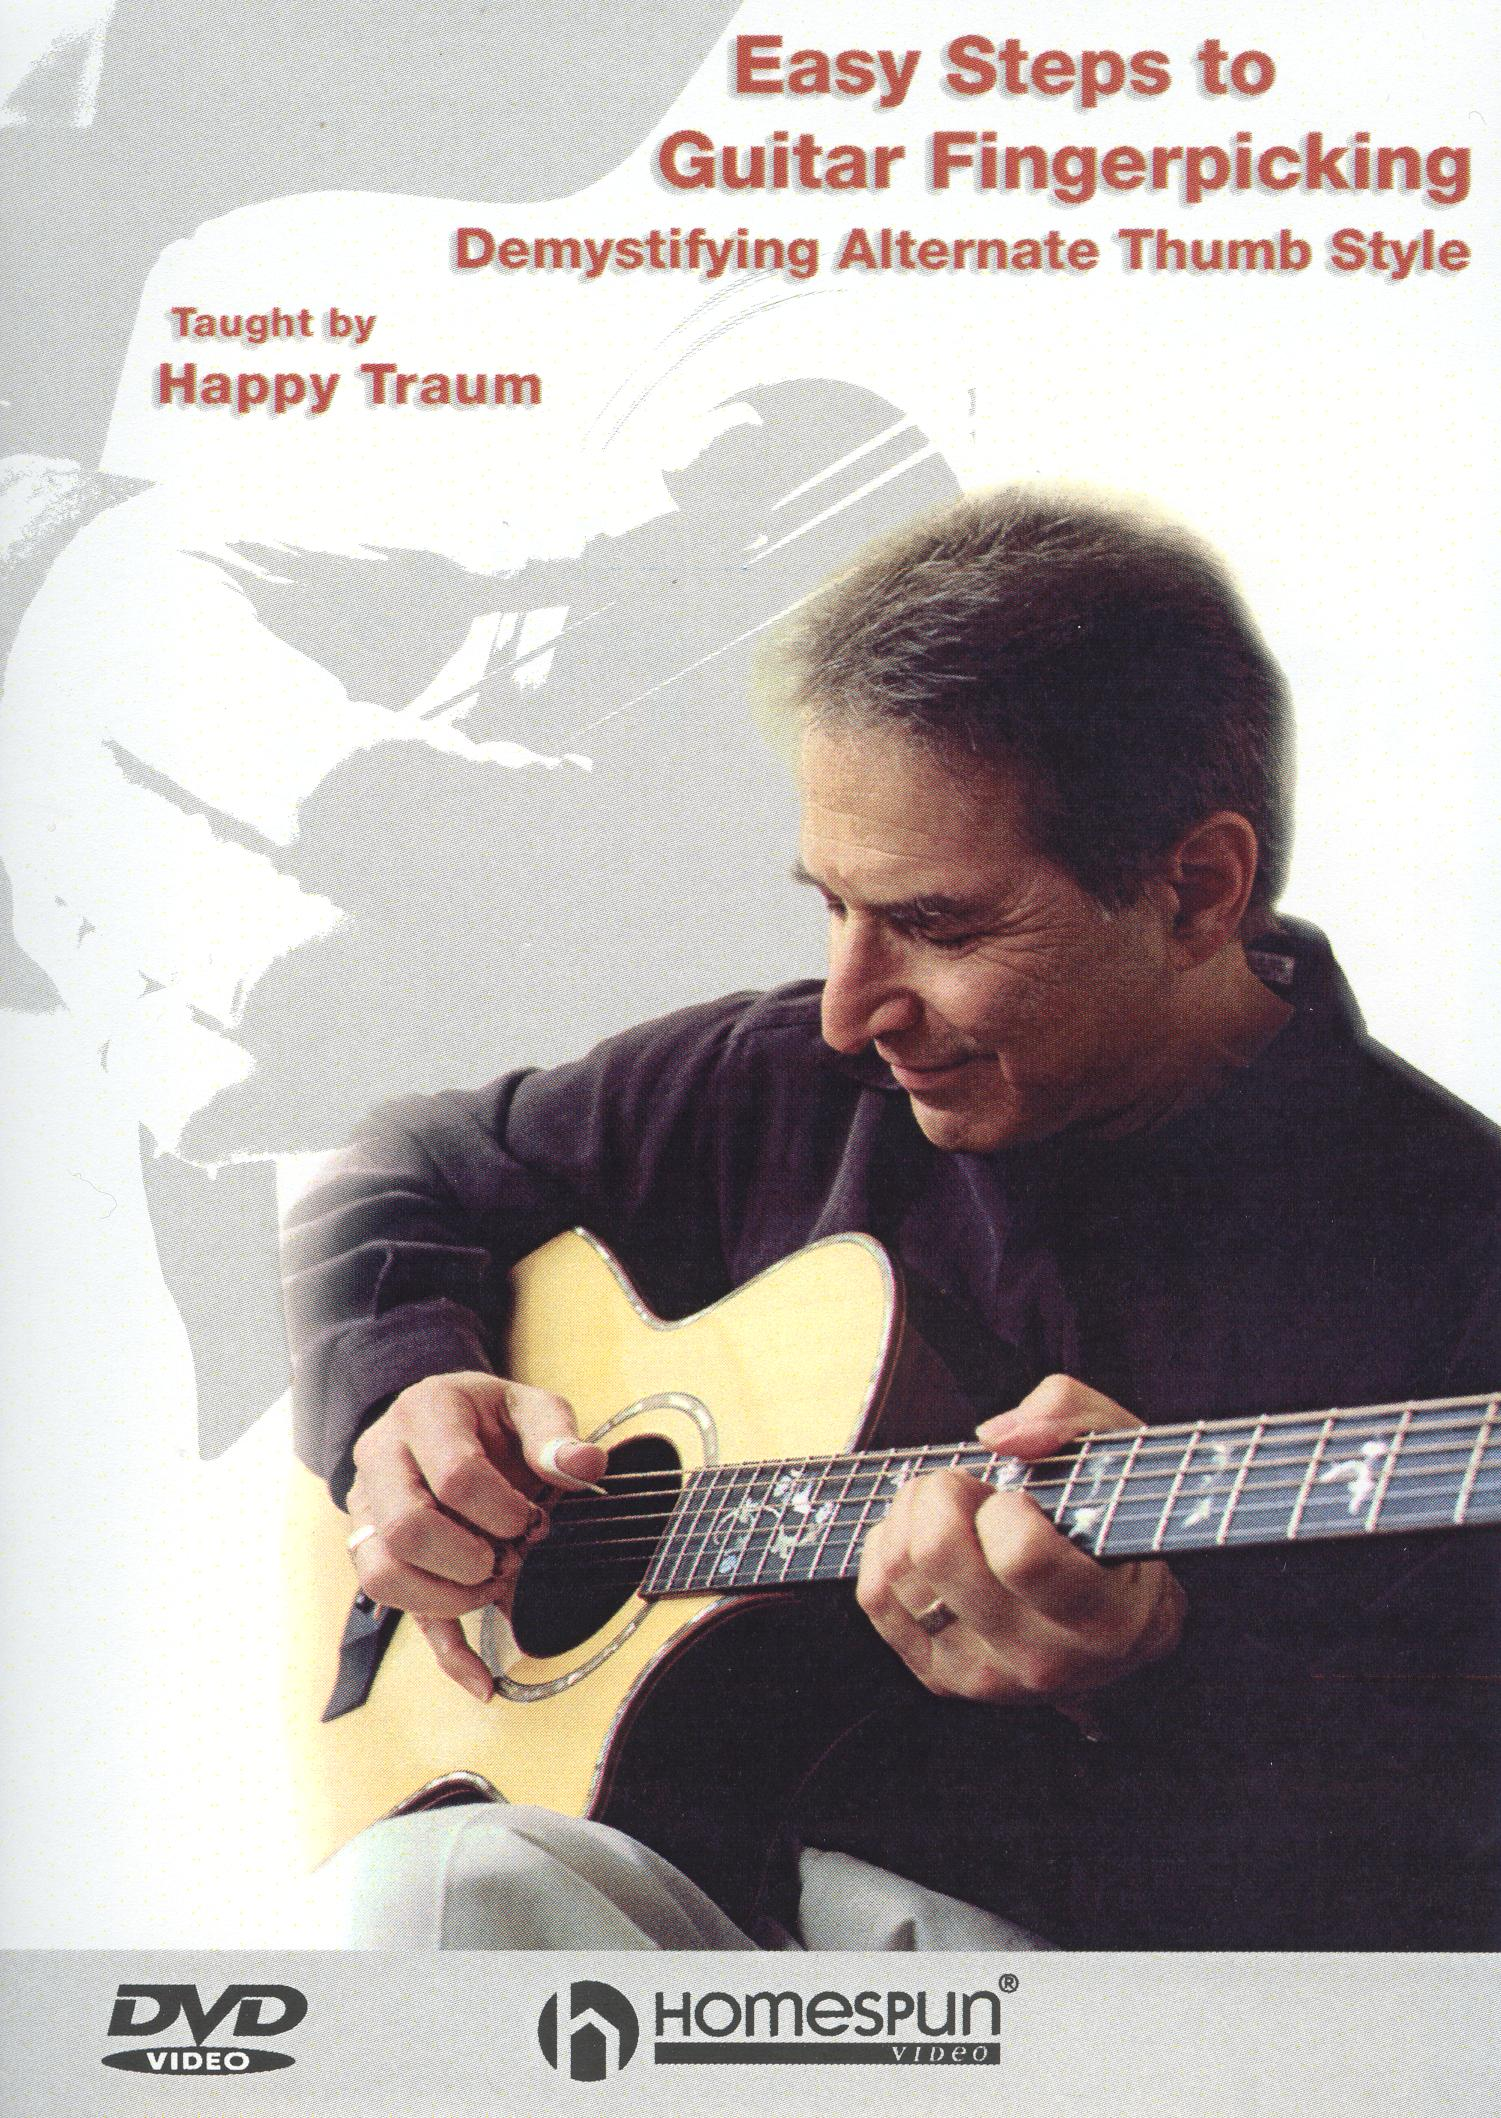 Happy Traum: Easy Steps to Guitar Fingerpicking, Vol. 1 - Demystifying Alternate Thumb Style